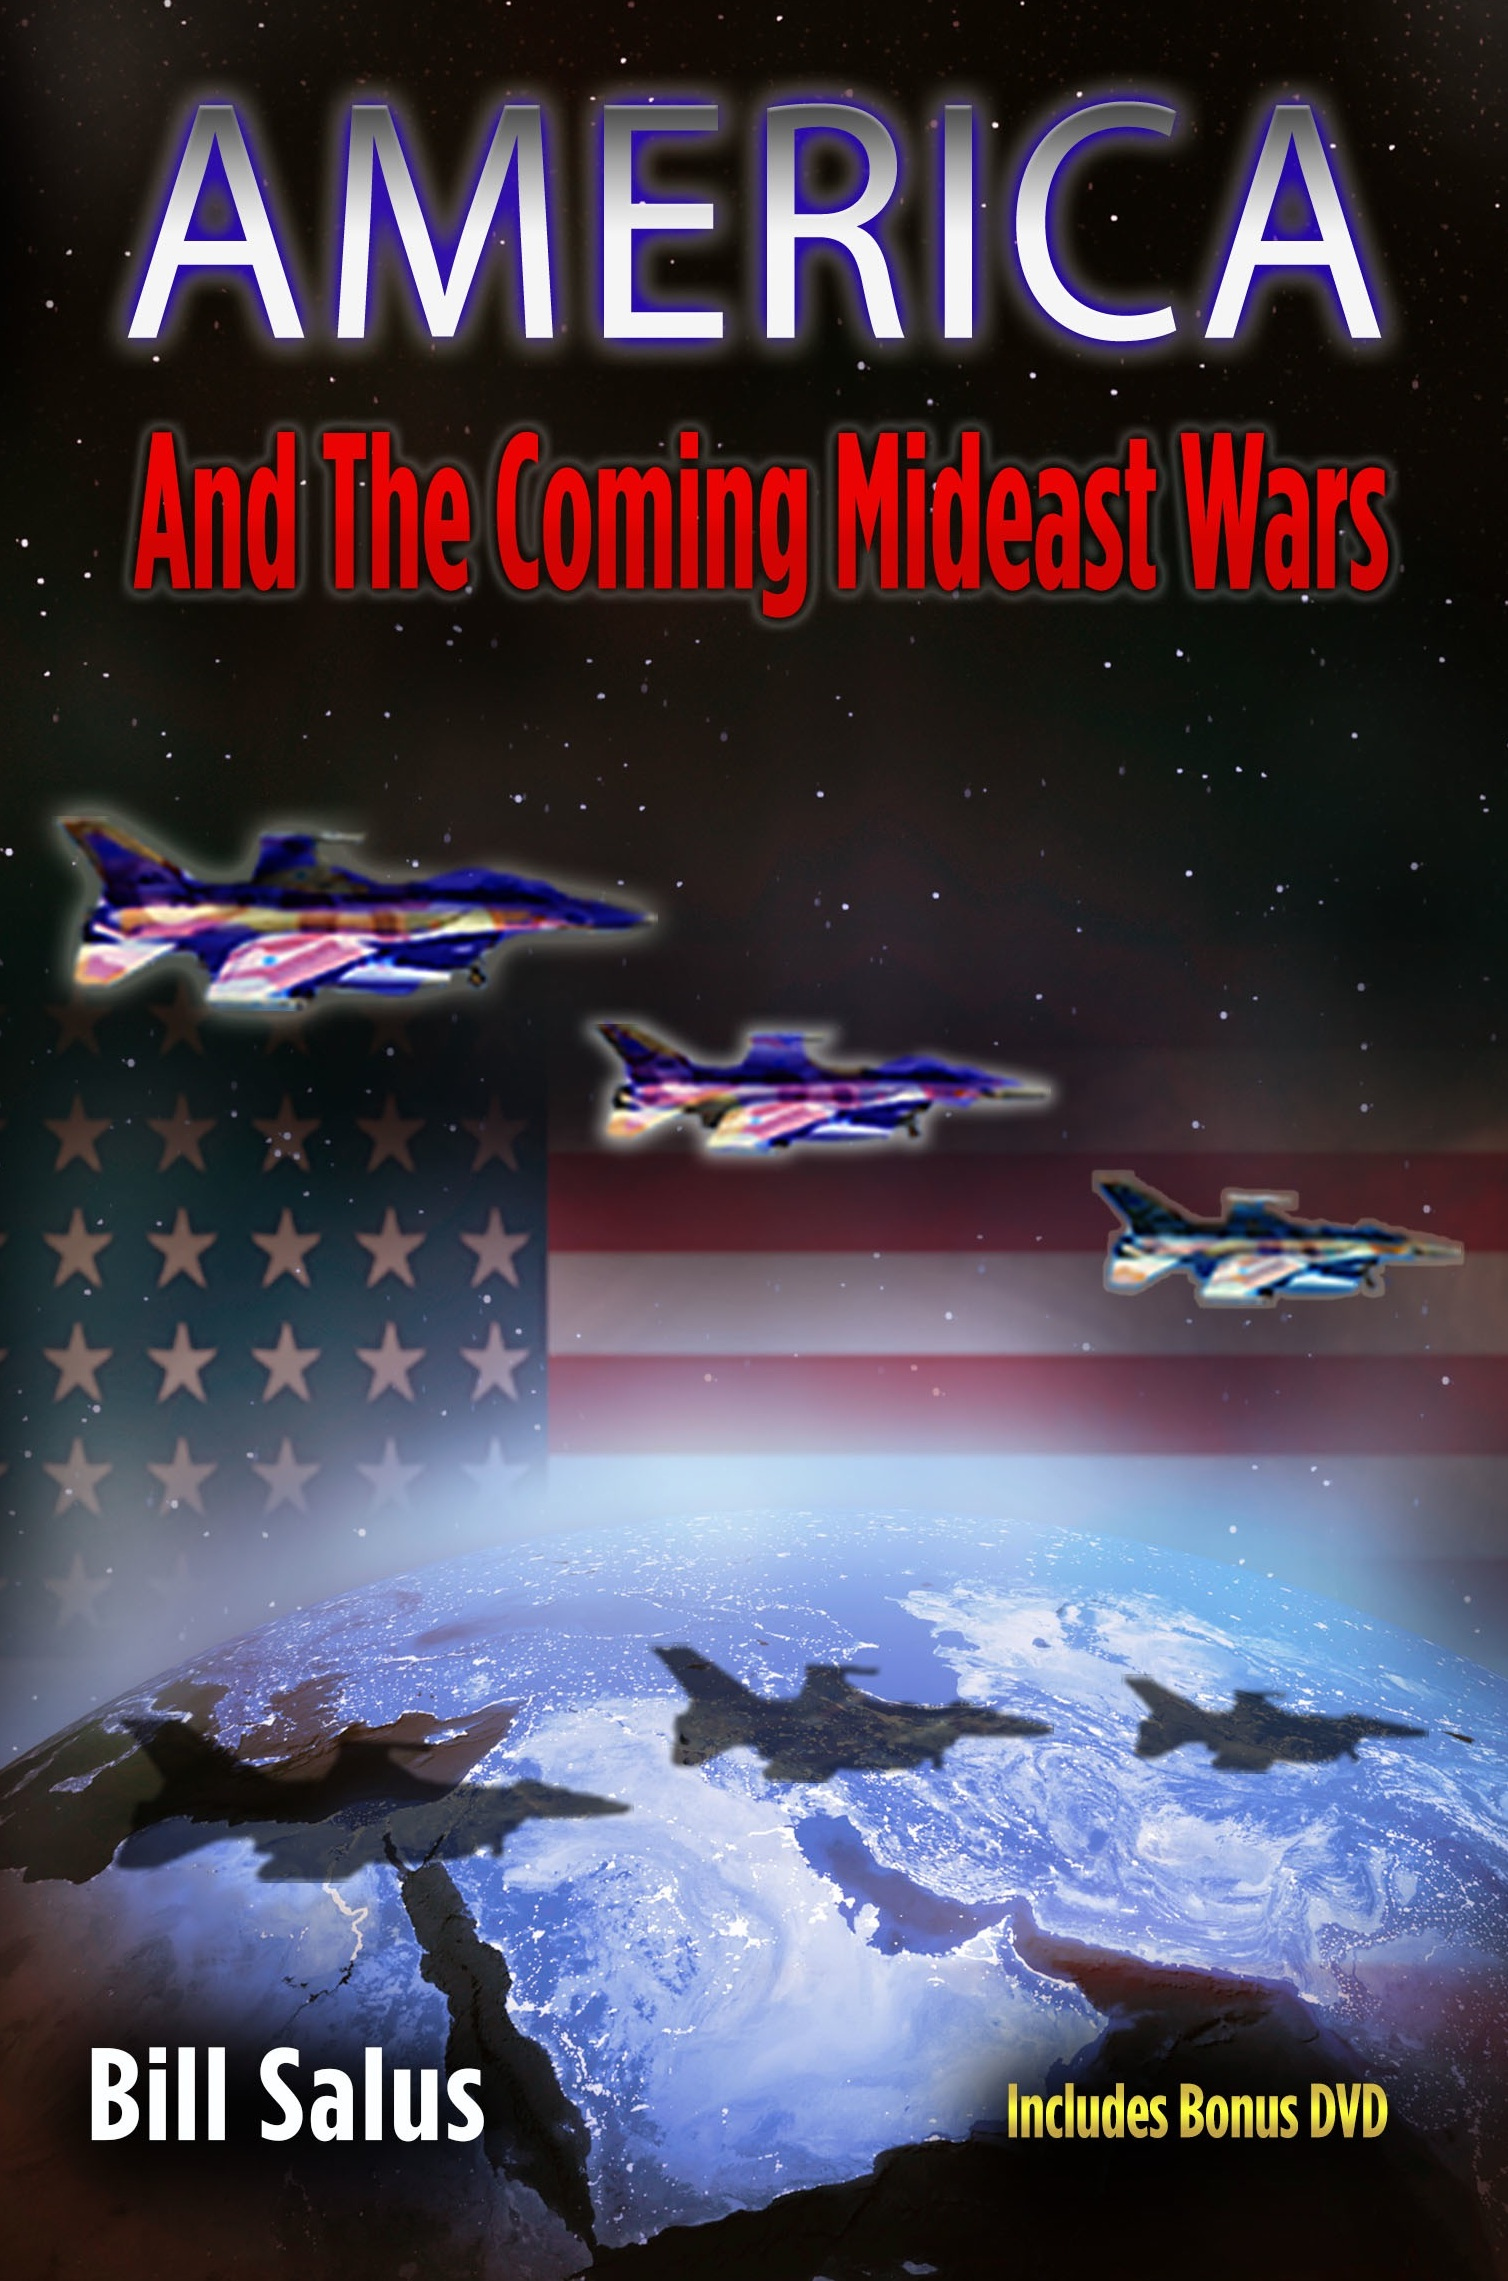 America and the Coming Mideast Wars!